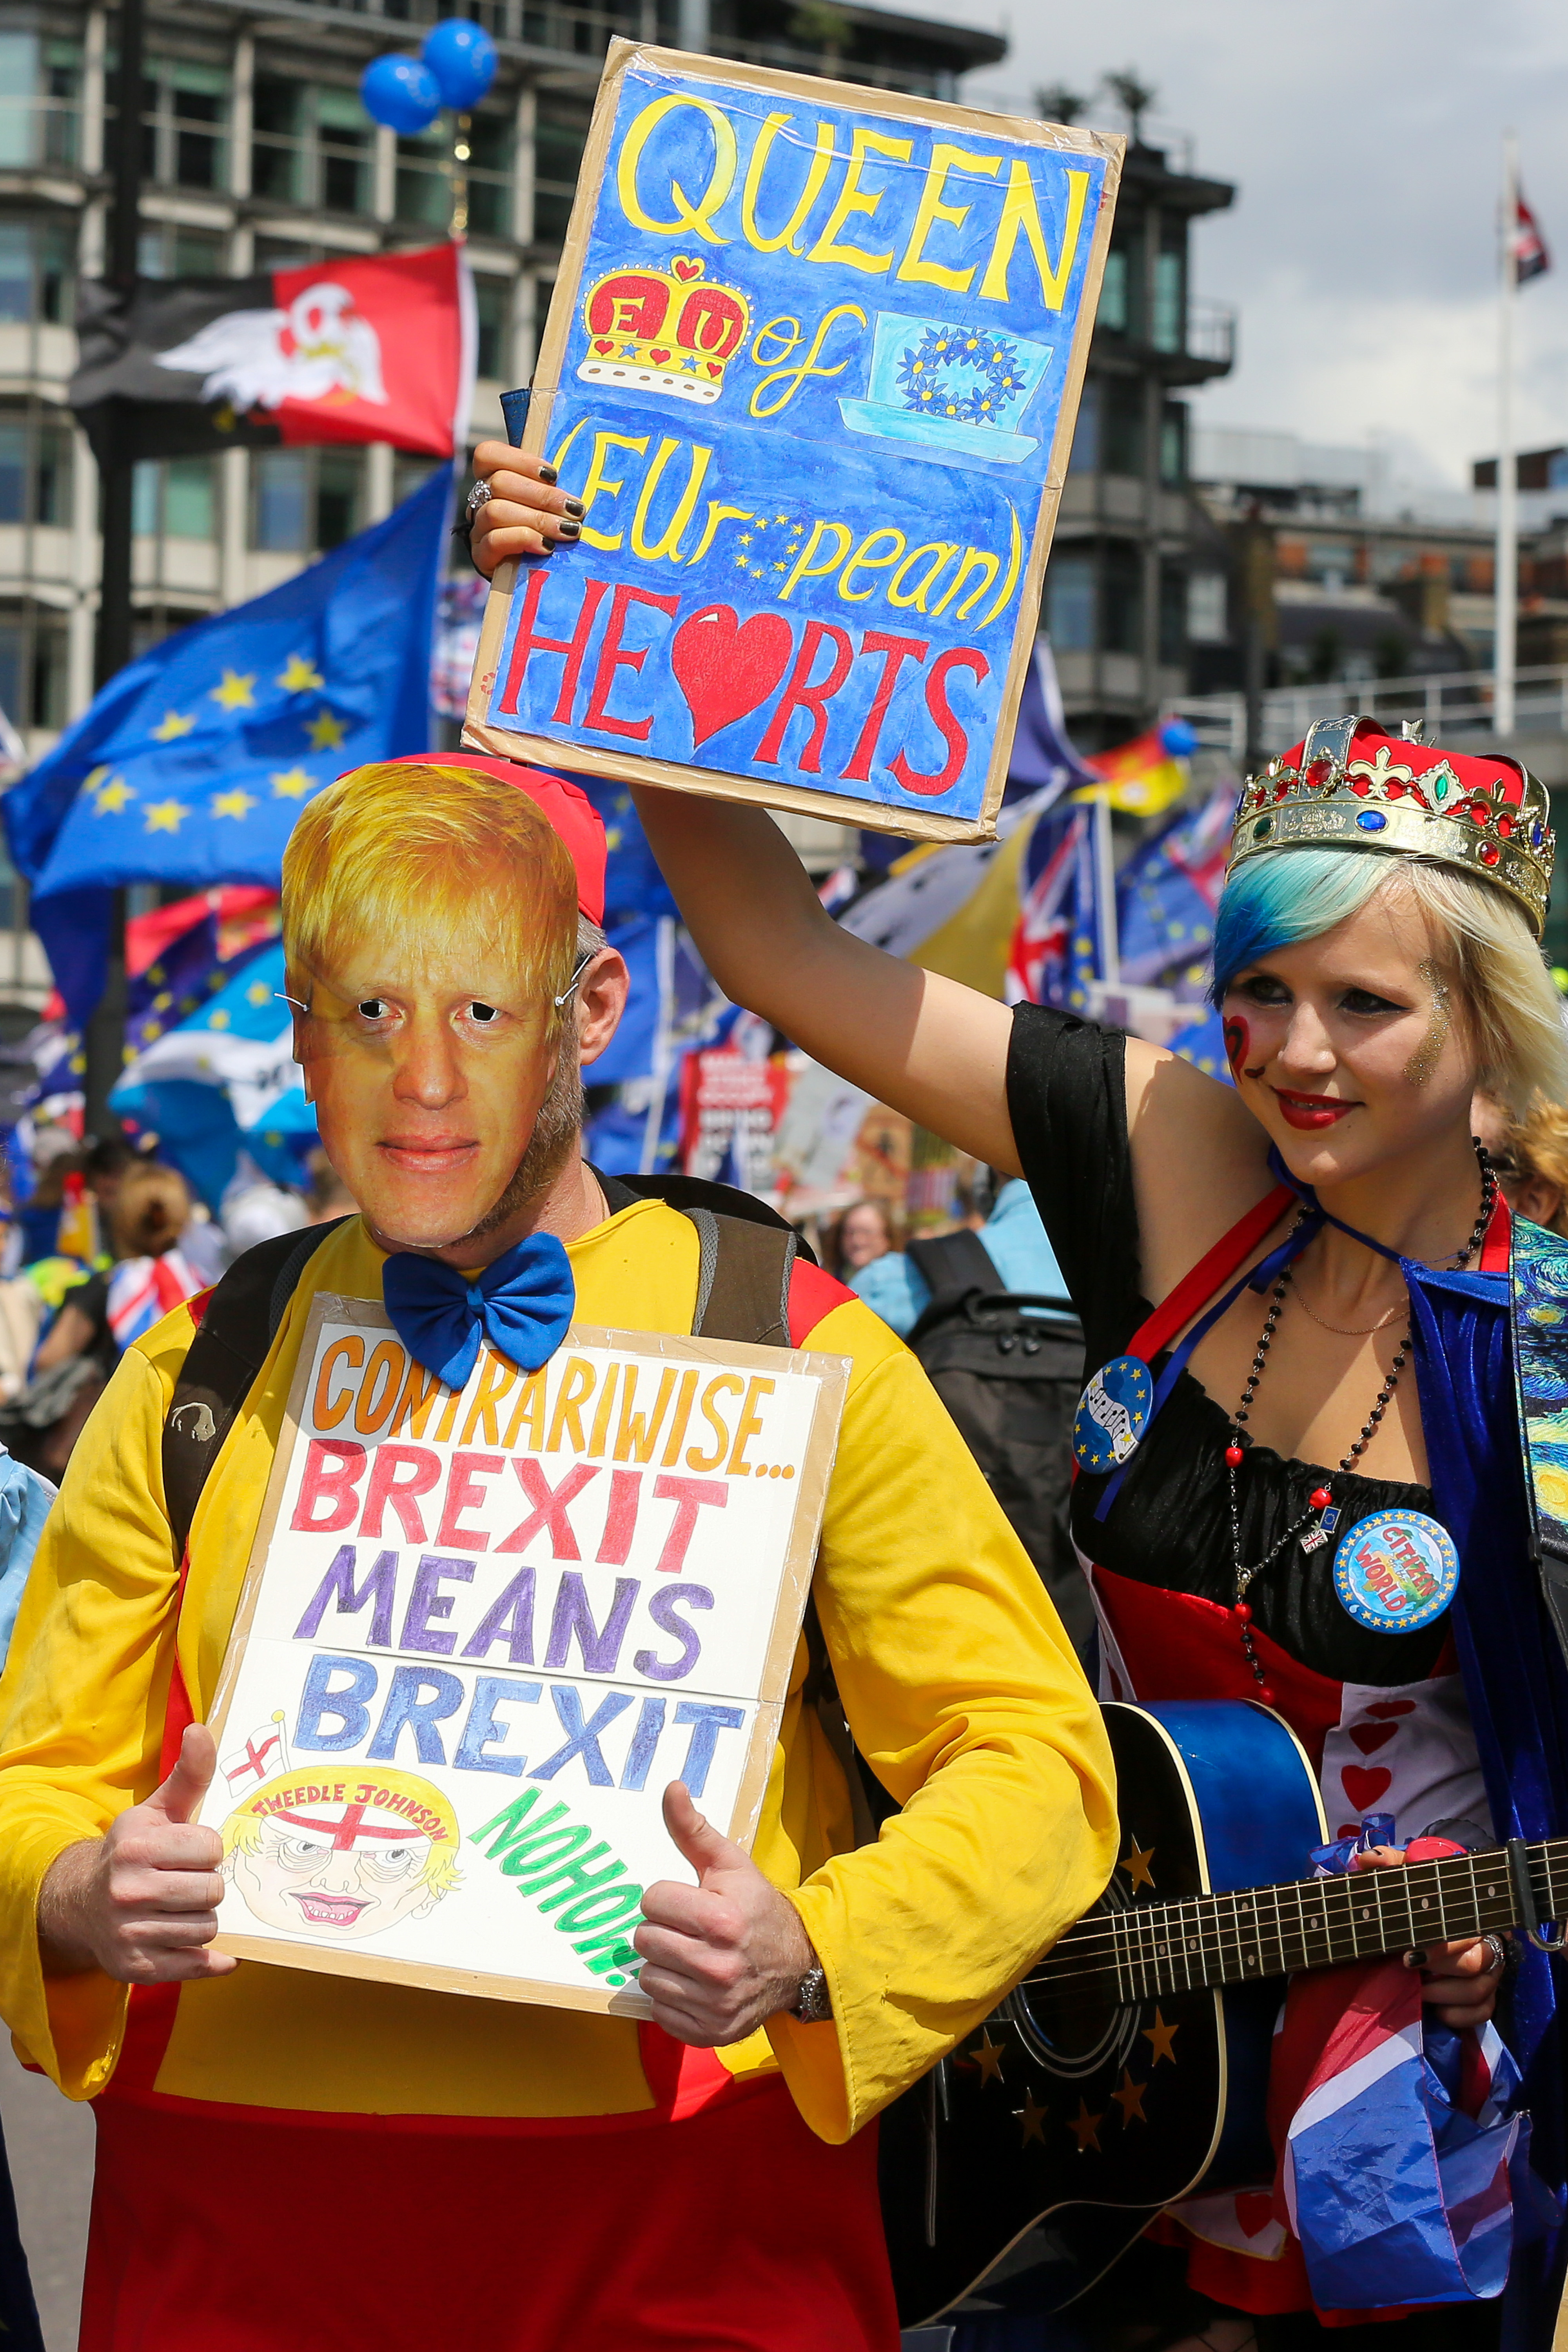 A Pro EU demonstrator is seen wearing Conservative Party leadership contender Boris Johnson's face mask while holding a placard, during the �No to Boris. Yes to Europe� march in central London. (Photo by Dinendra Haria / SOPA Images/Sipa USA)